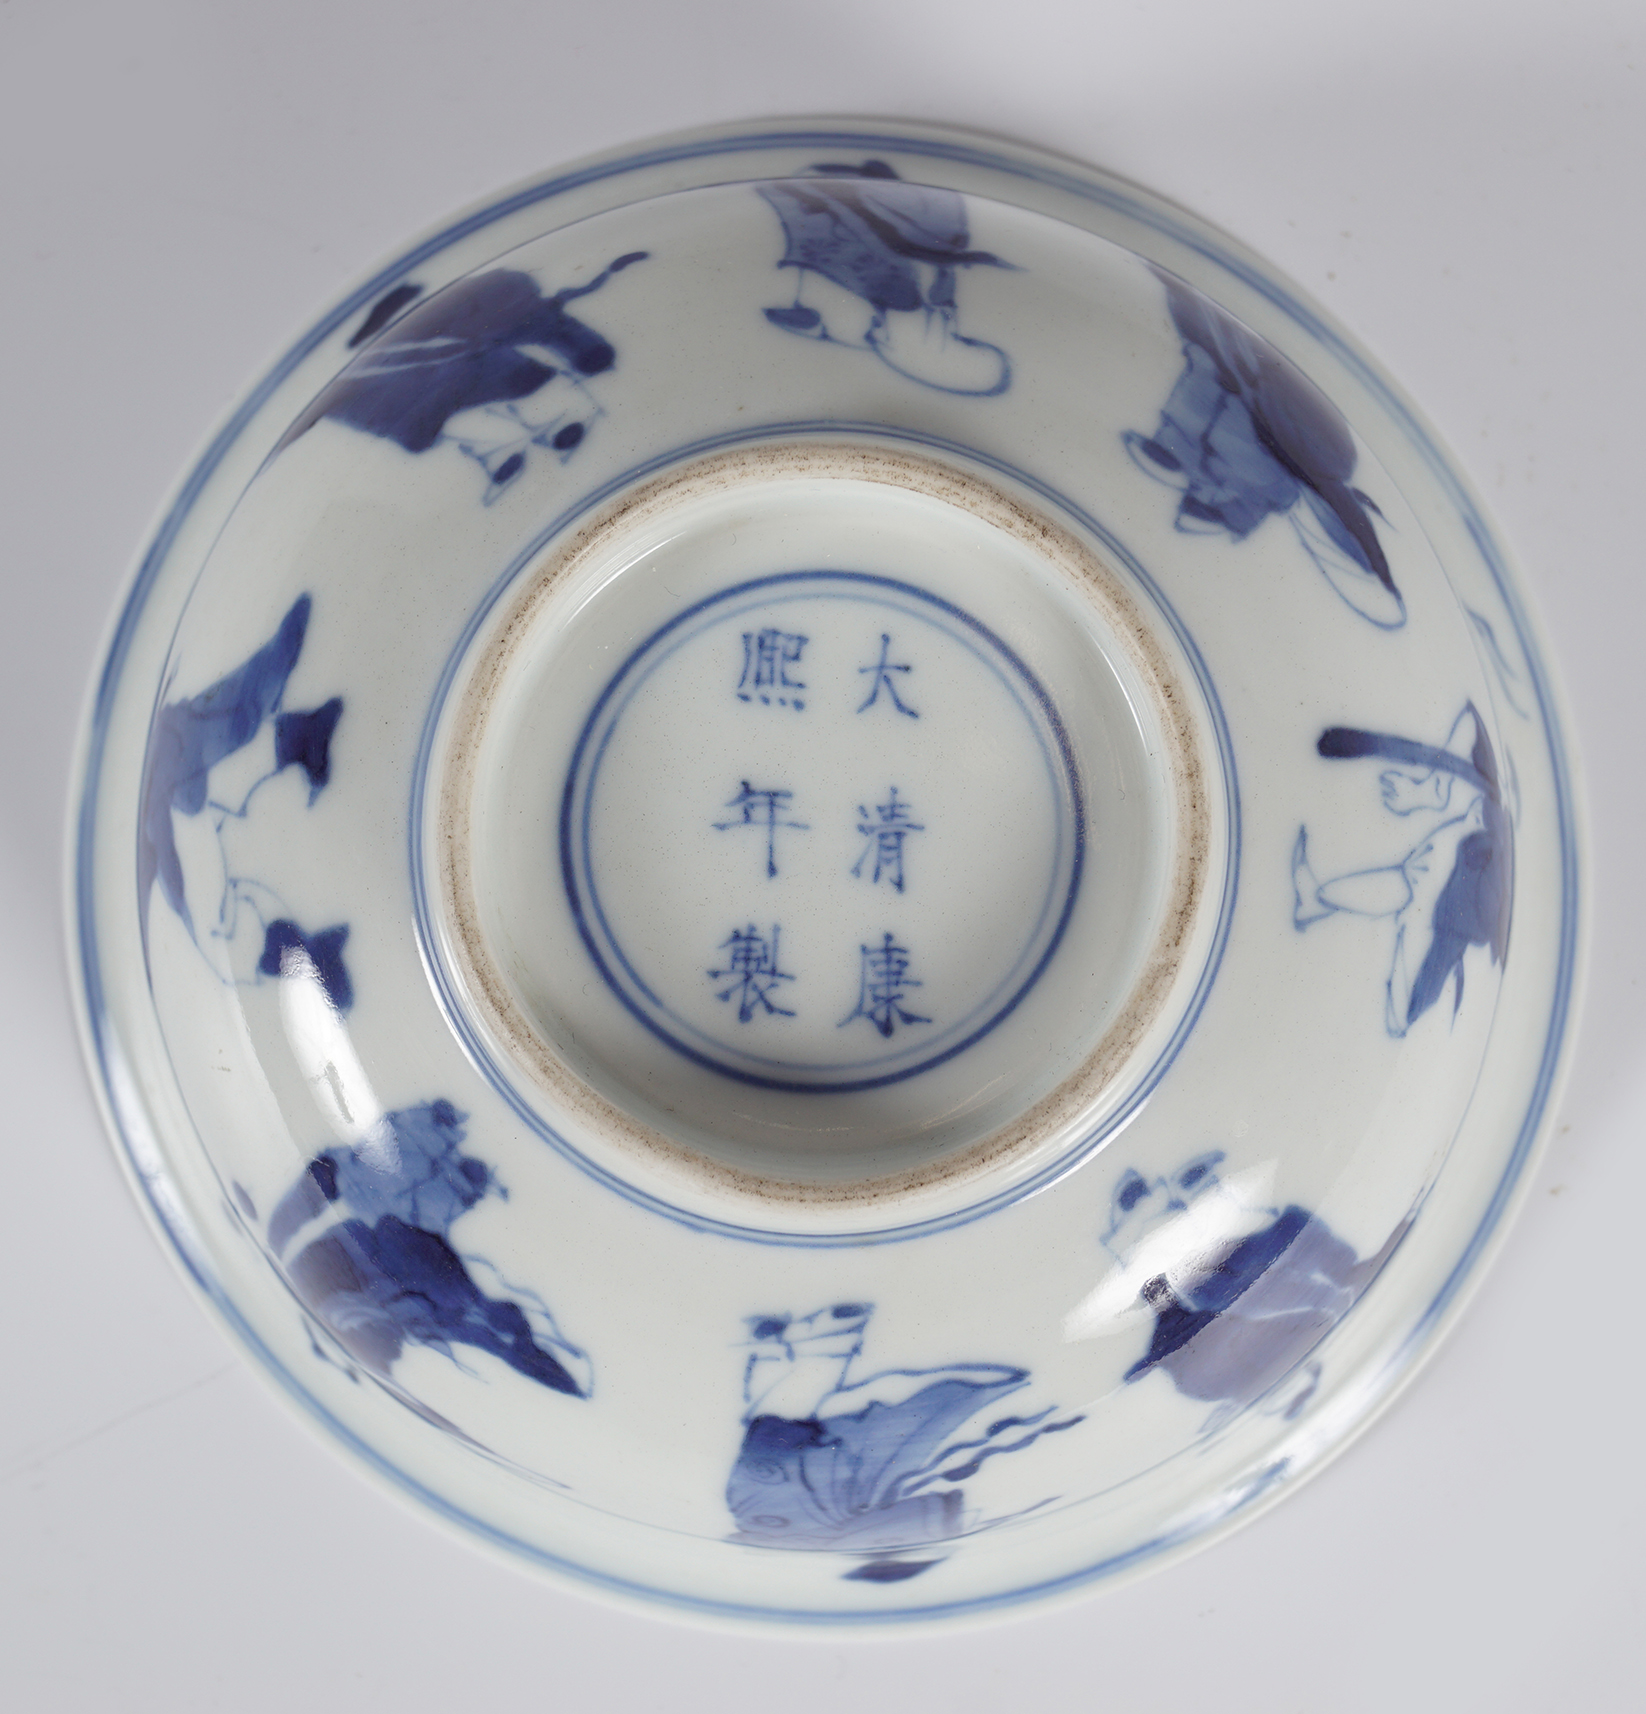 CHINESE BLUE AND WHITE EIGHT IMMORTALS BOWL - Image 3 of 4